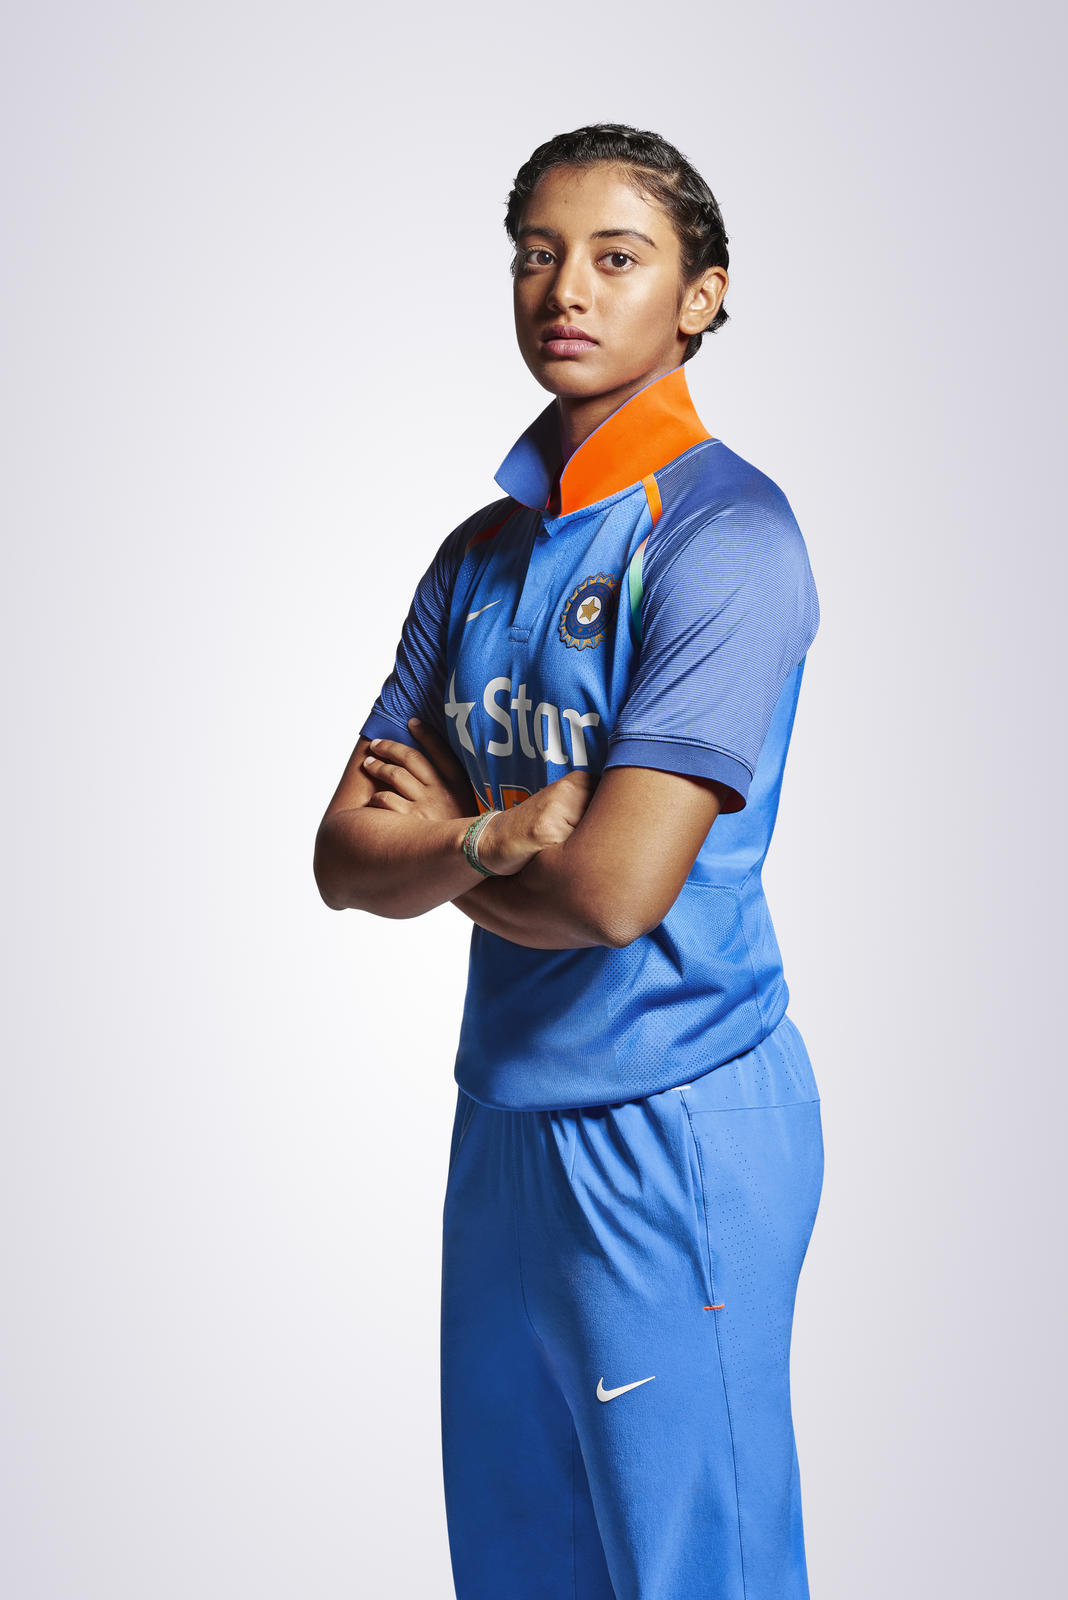 Indian Cricket Team Nike Shoes